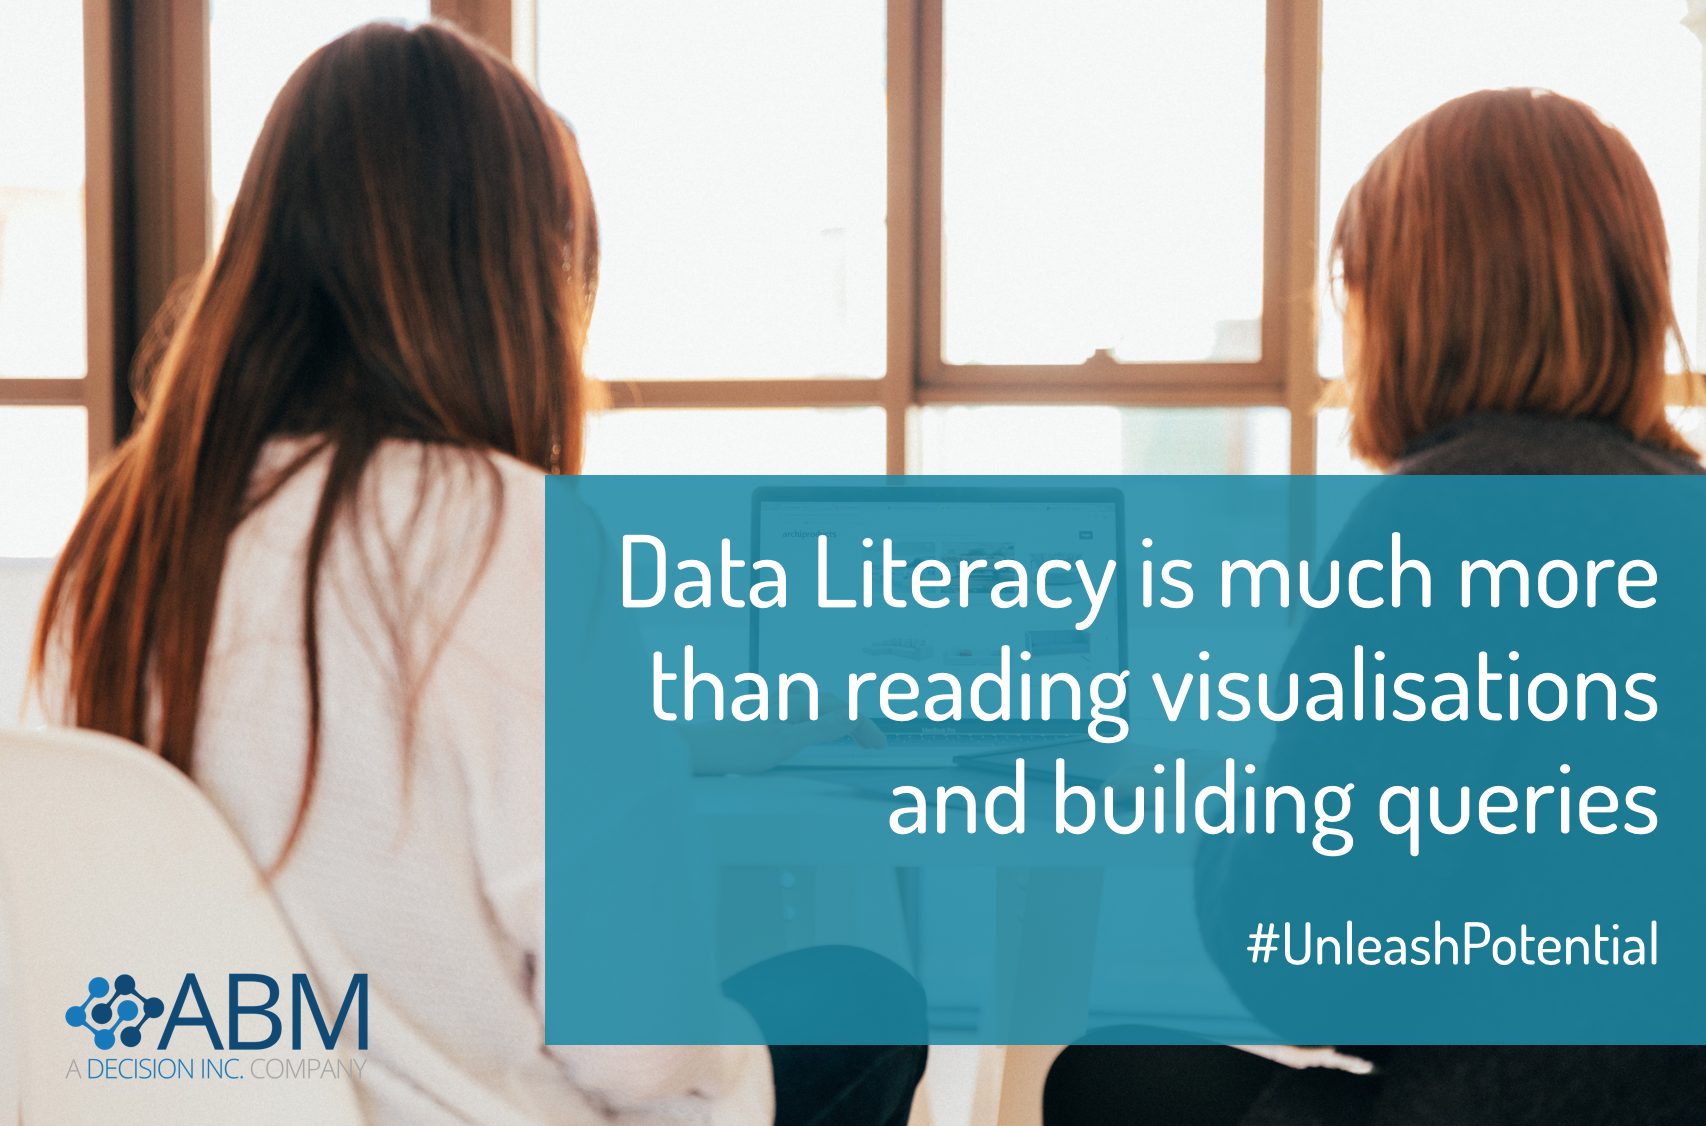 Data Literacy is much more than reading visualisations and building queries